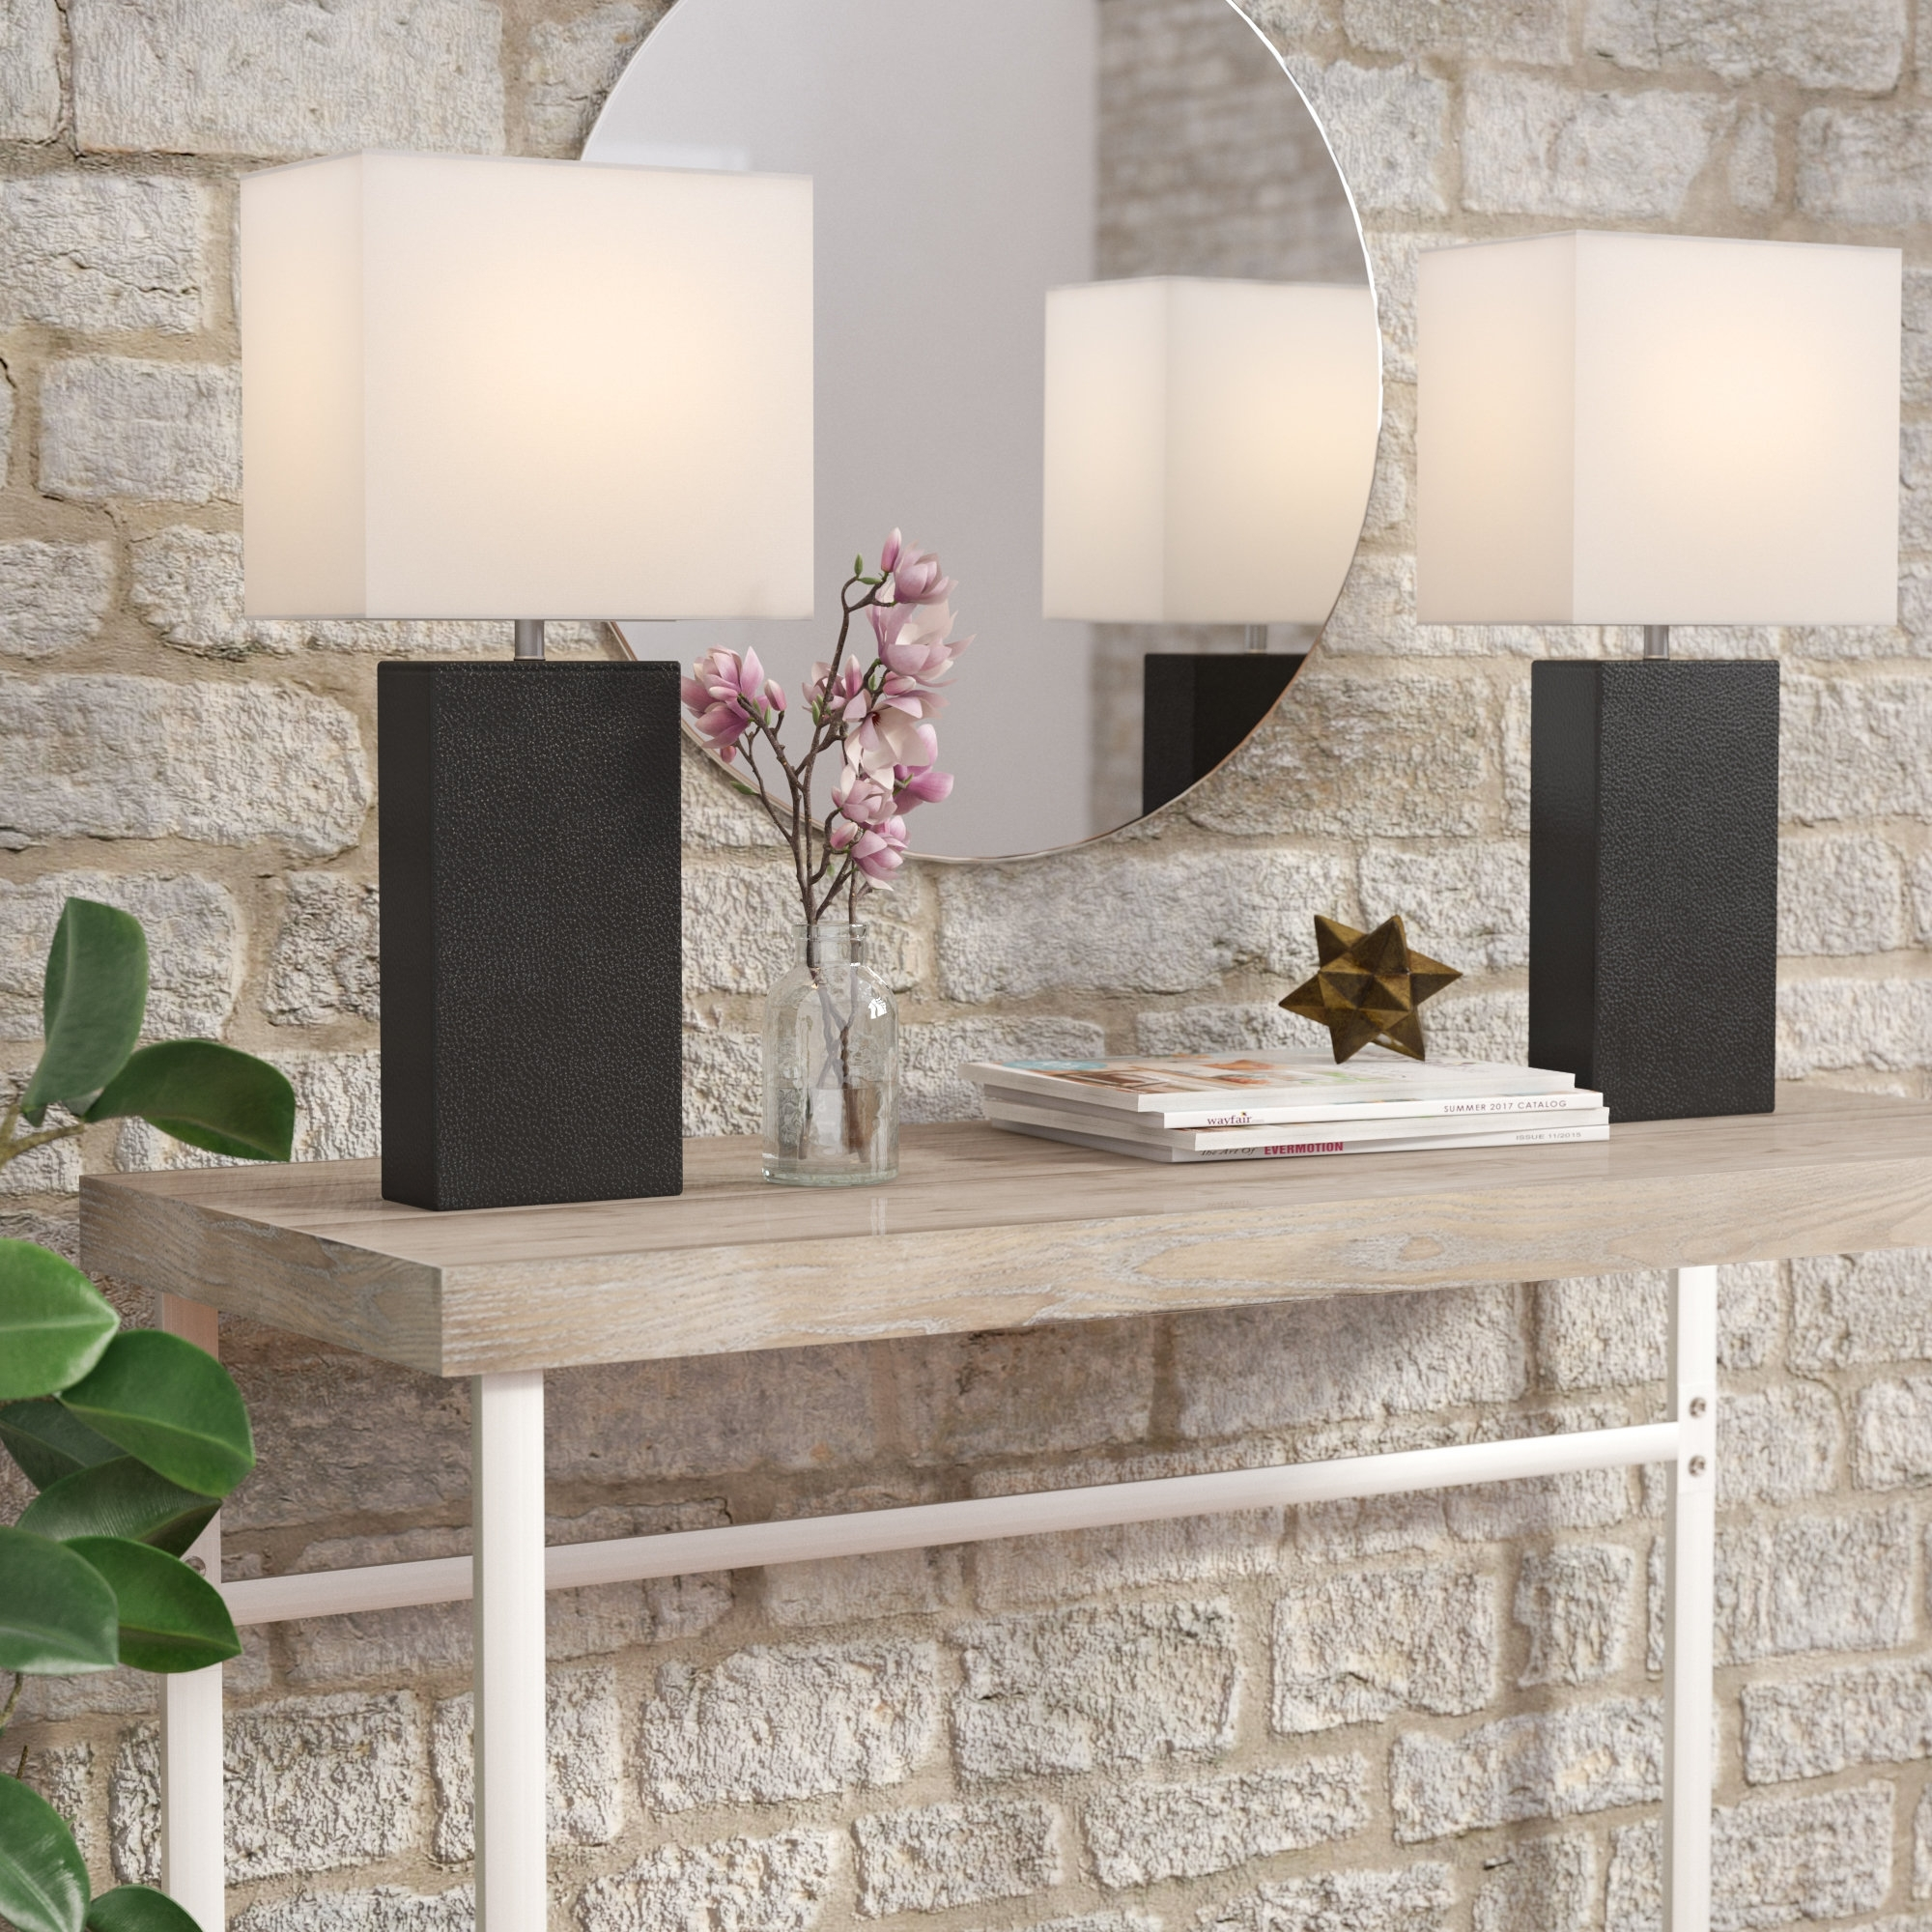 Extraordinary Living Room Table Lamps 3 Indra 21 22 Lamp | Tingsmombooks In Table Lamps For The Living Room (View 12 of 15)